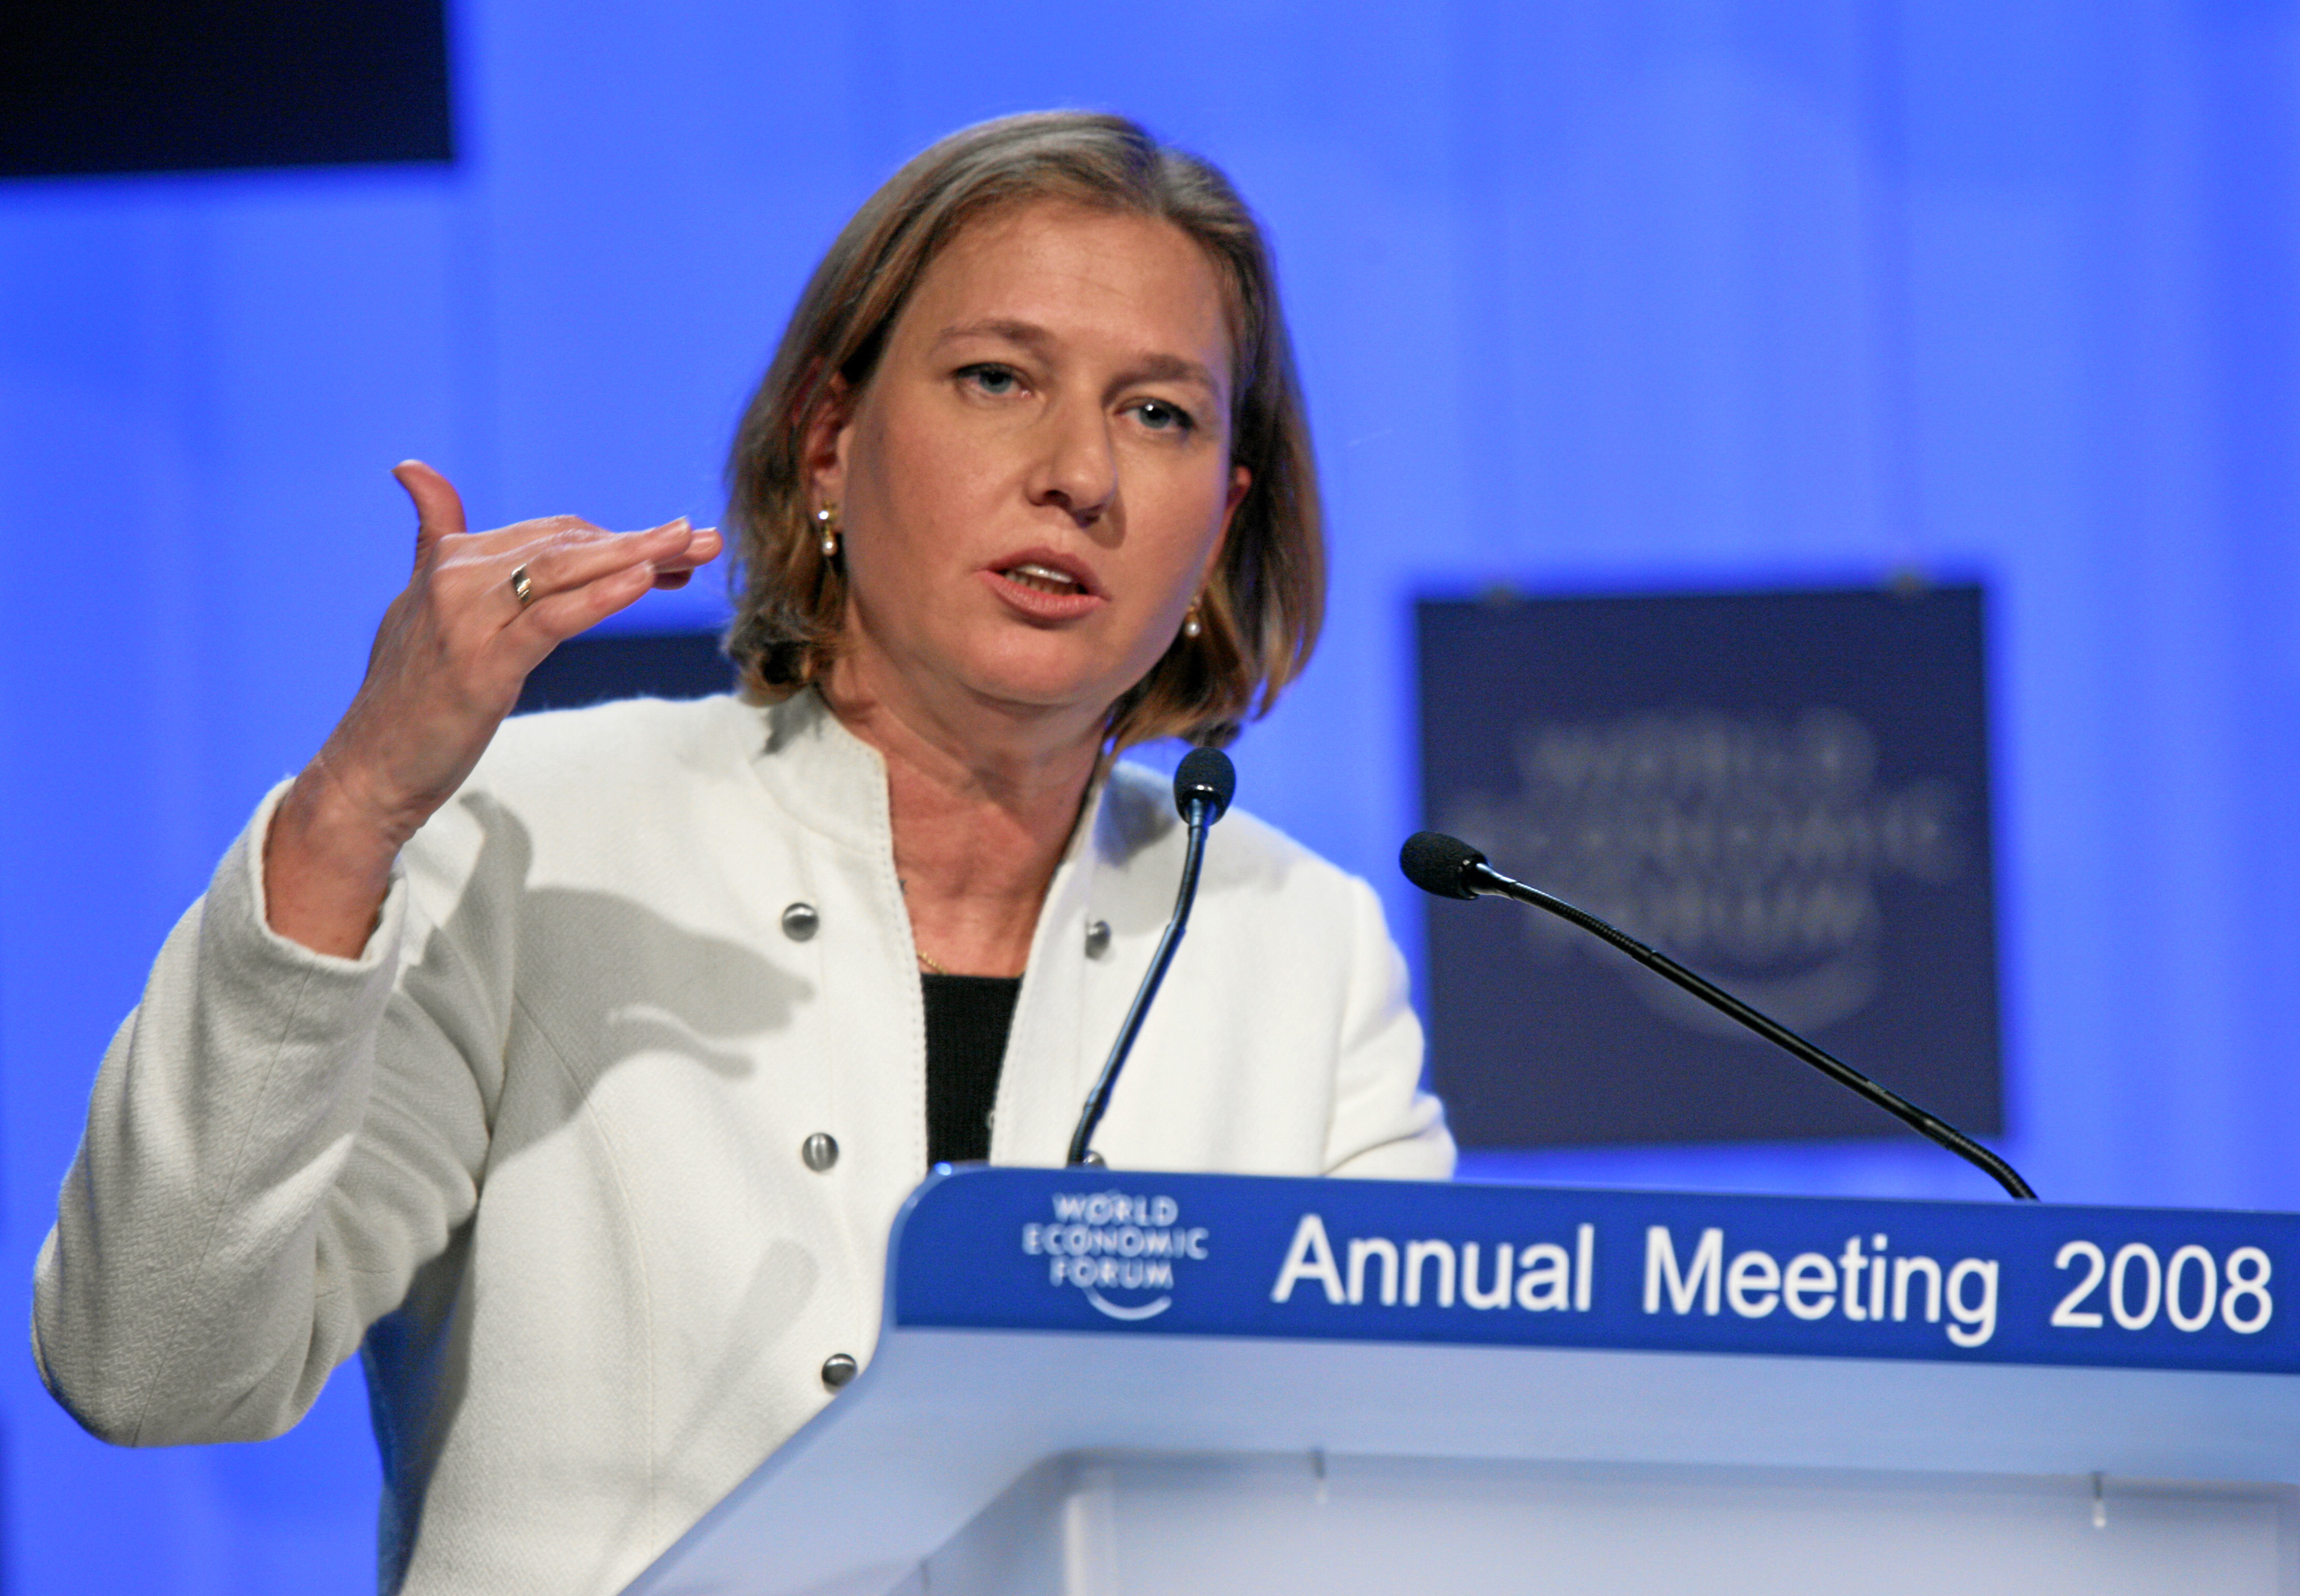 http://upload.wikimedia.org/wikipedia/commons/4/42/Tzipi_Livni_-_WEF_Annual_Meeting_Davos_2008.jpg